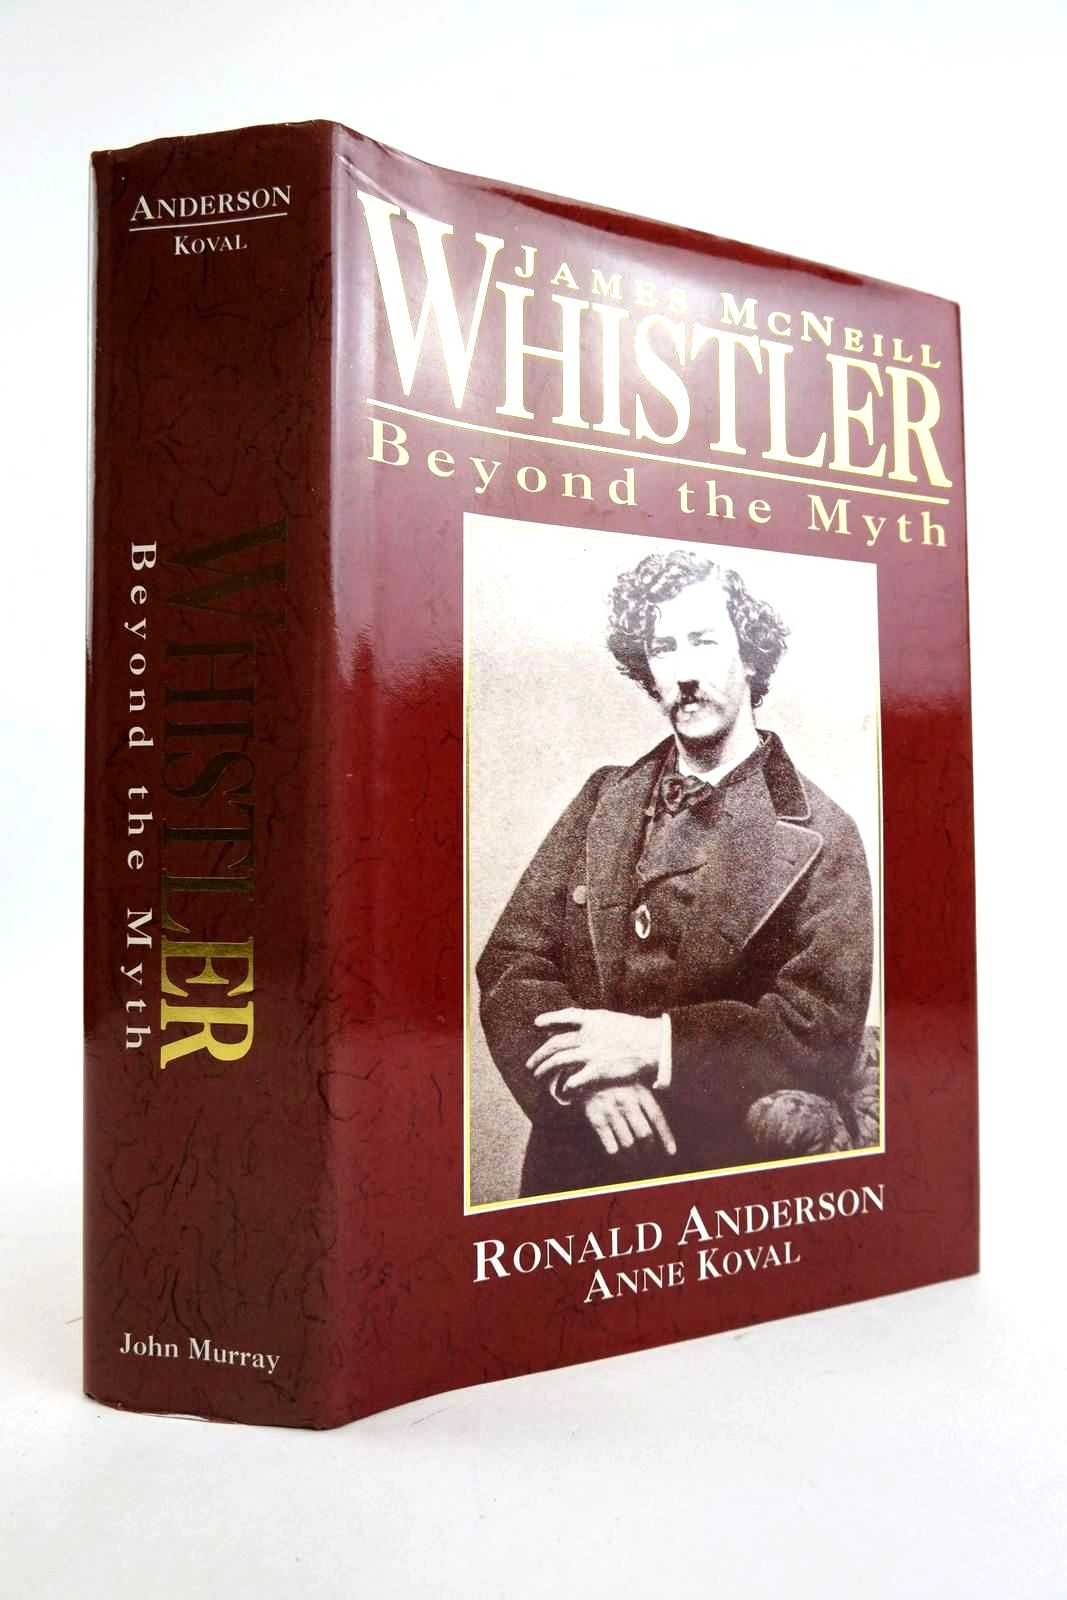 Photo of JAMES MCNEILL WHISTLER BEYOND THE MYTH written by Anderson, Ronald